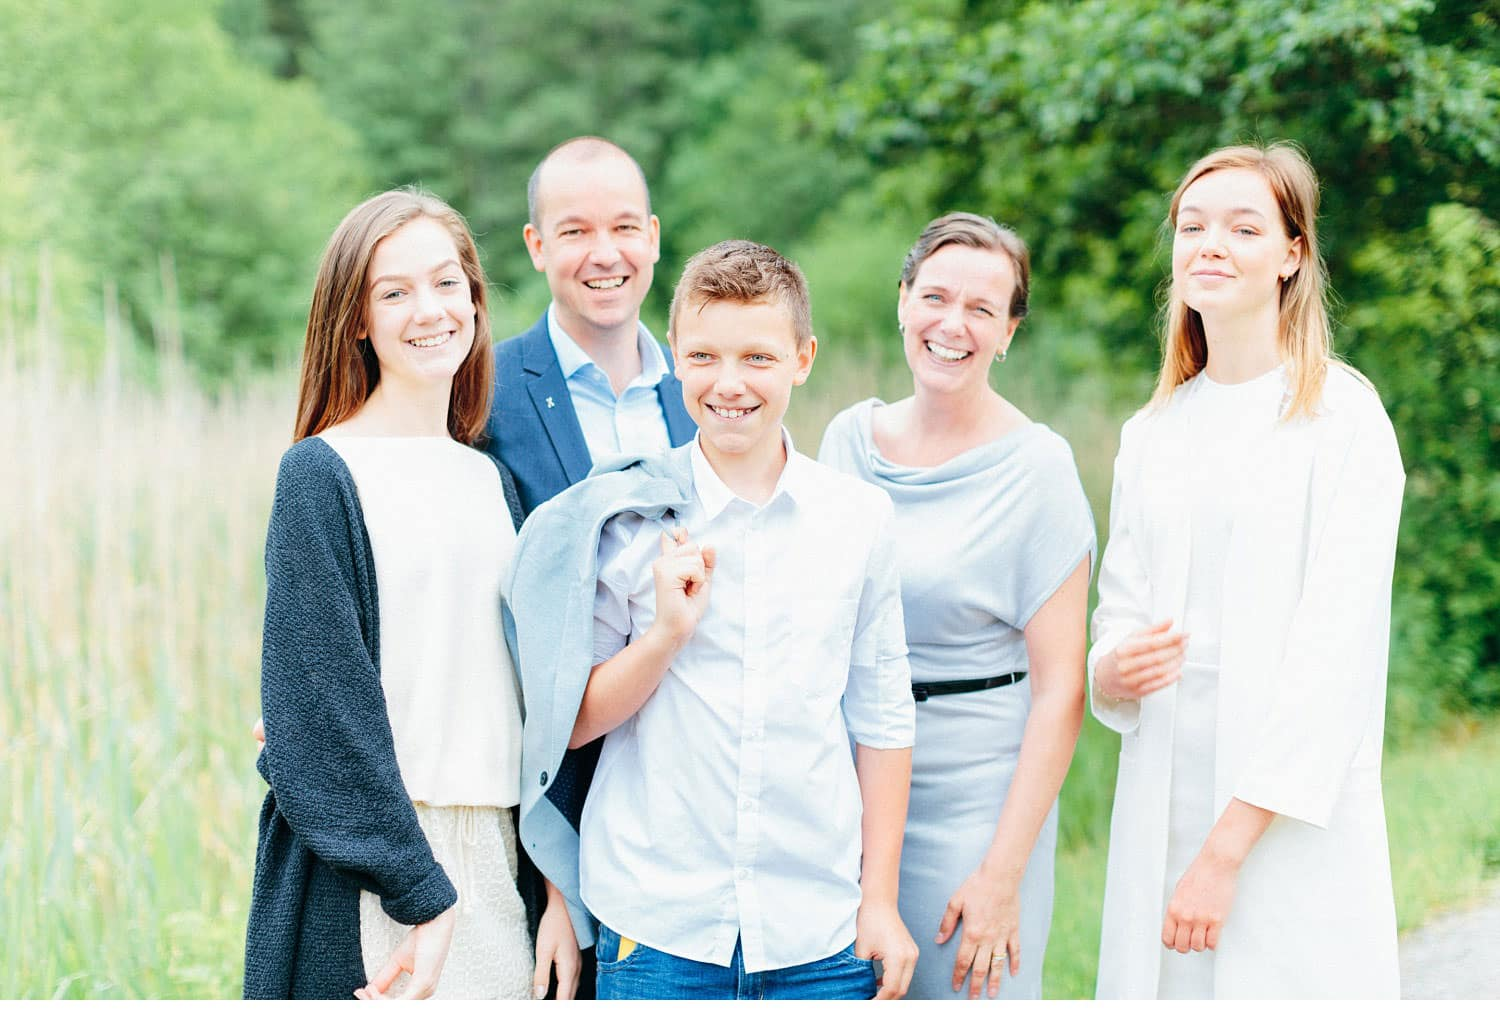 lena liljestr  m family 67 - 3 families, 1 big family portrait, family-session